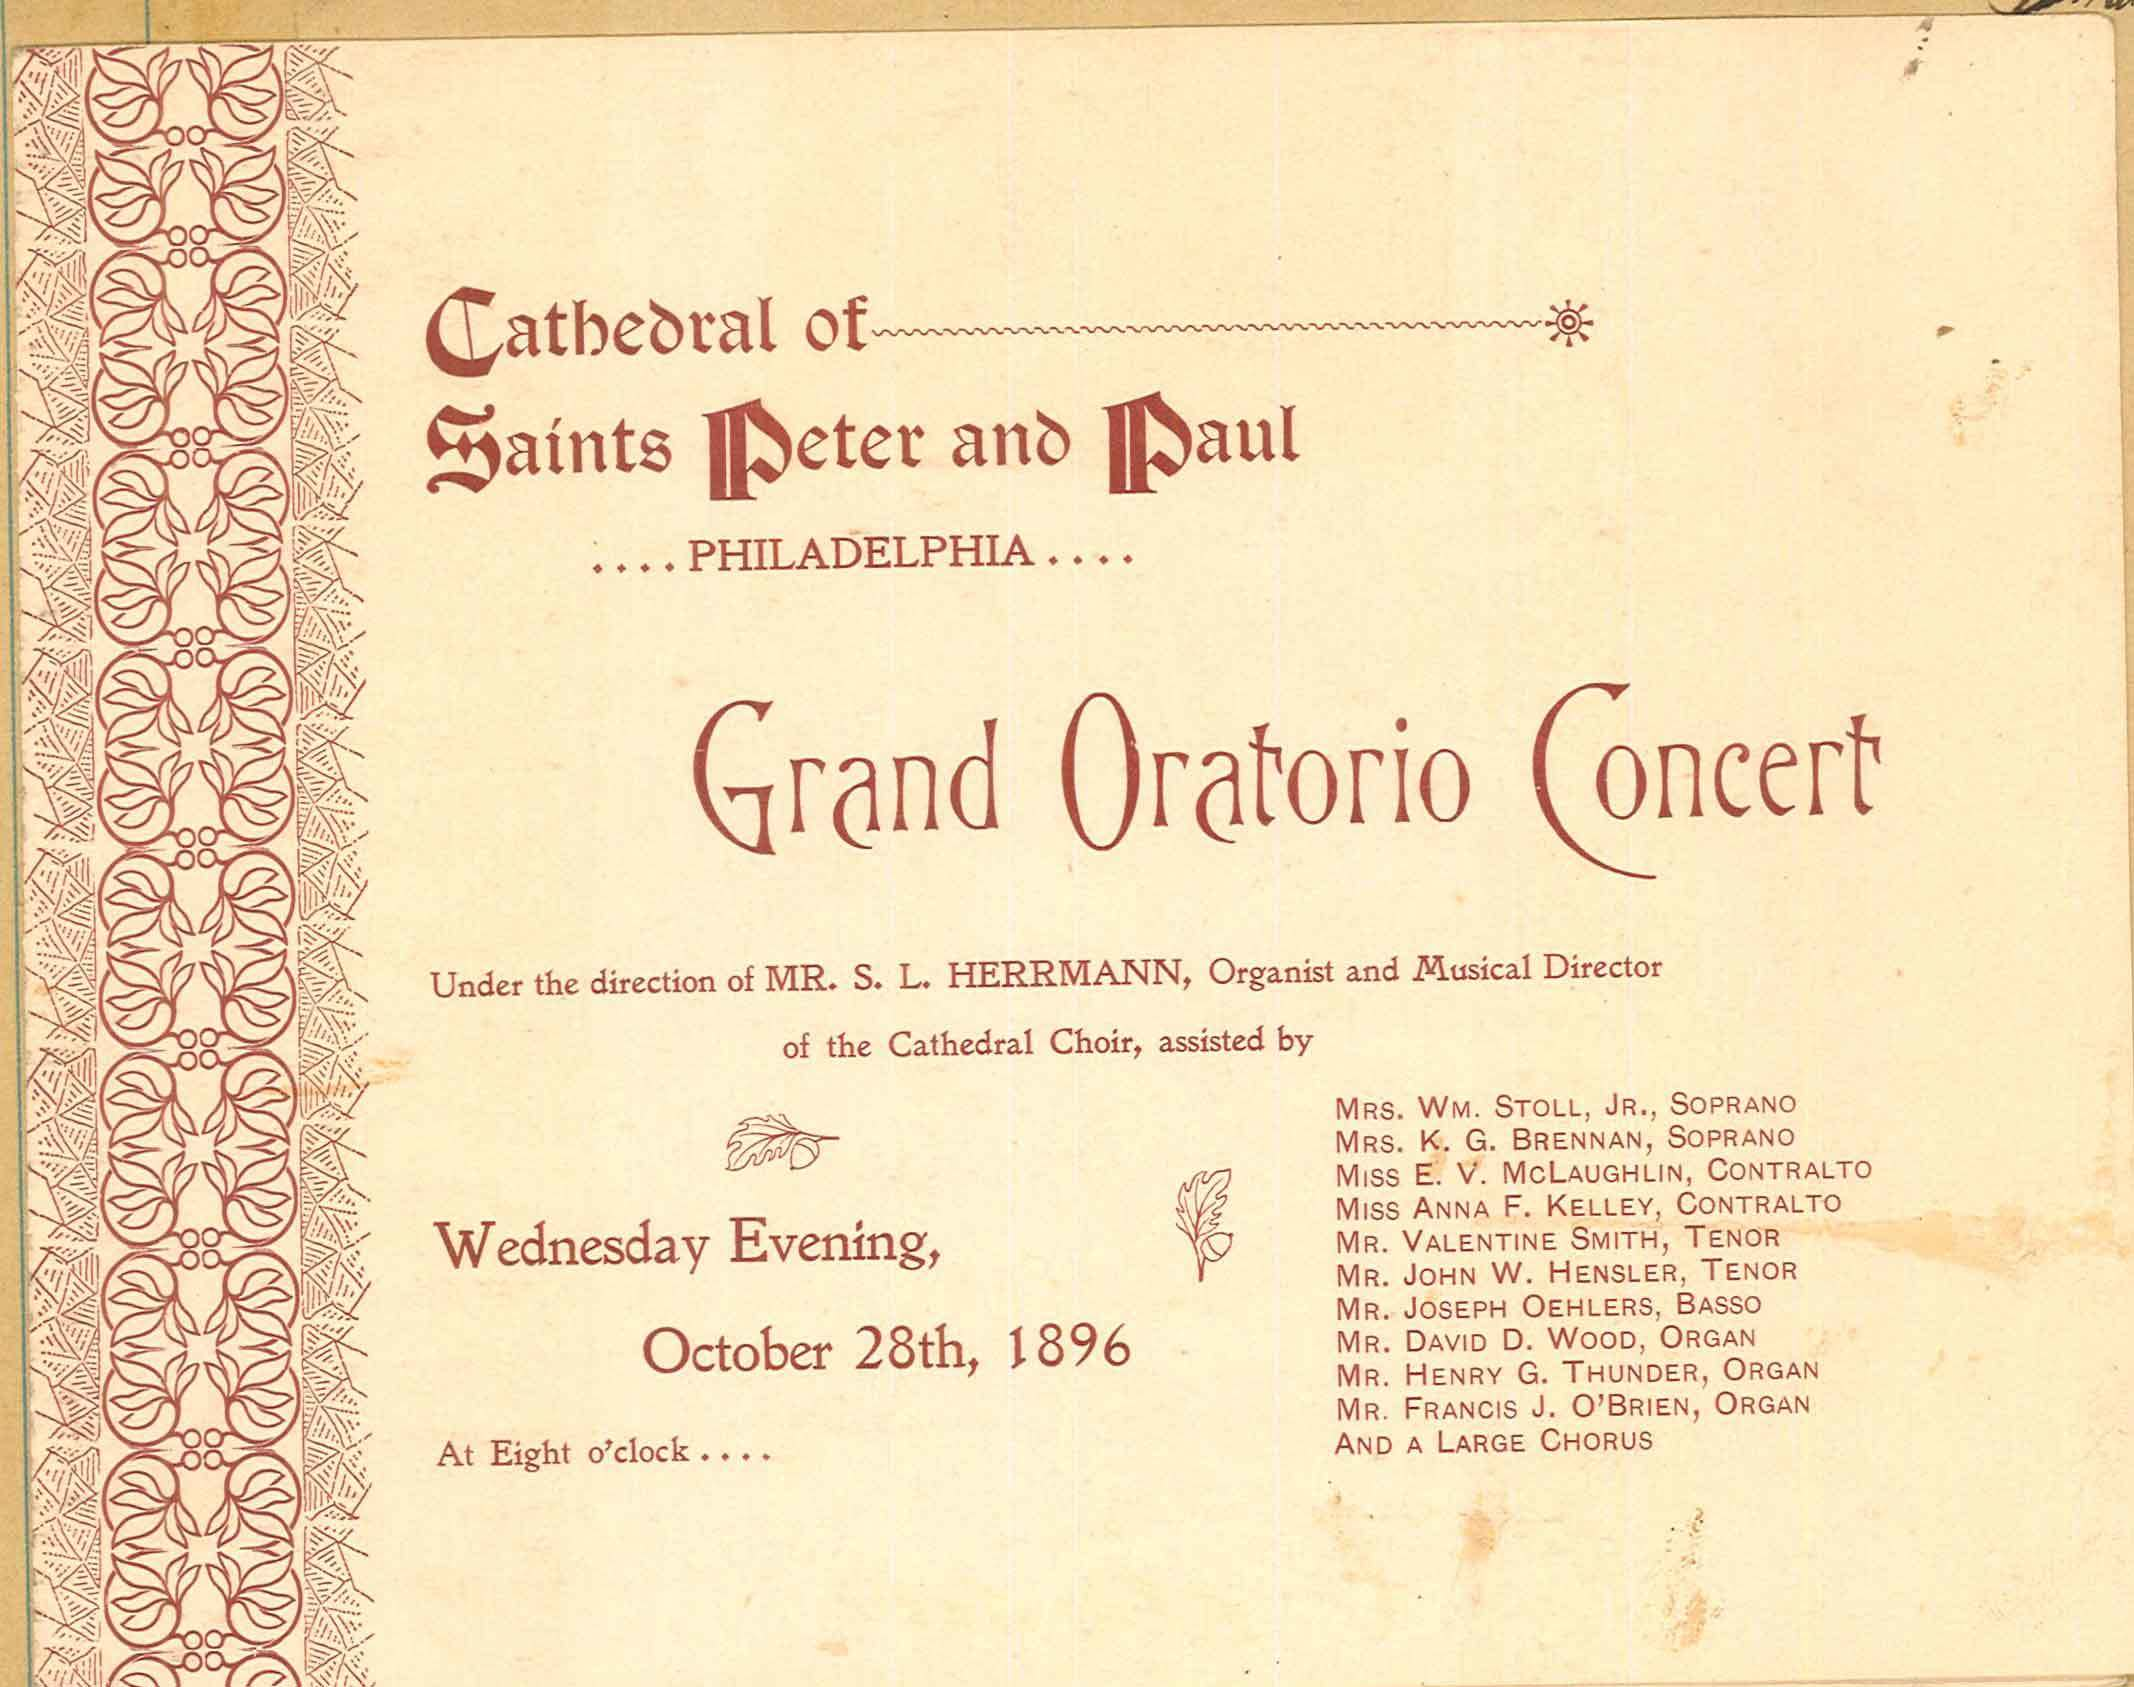 Grand Oratorio Concert Program